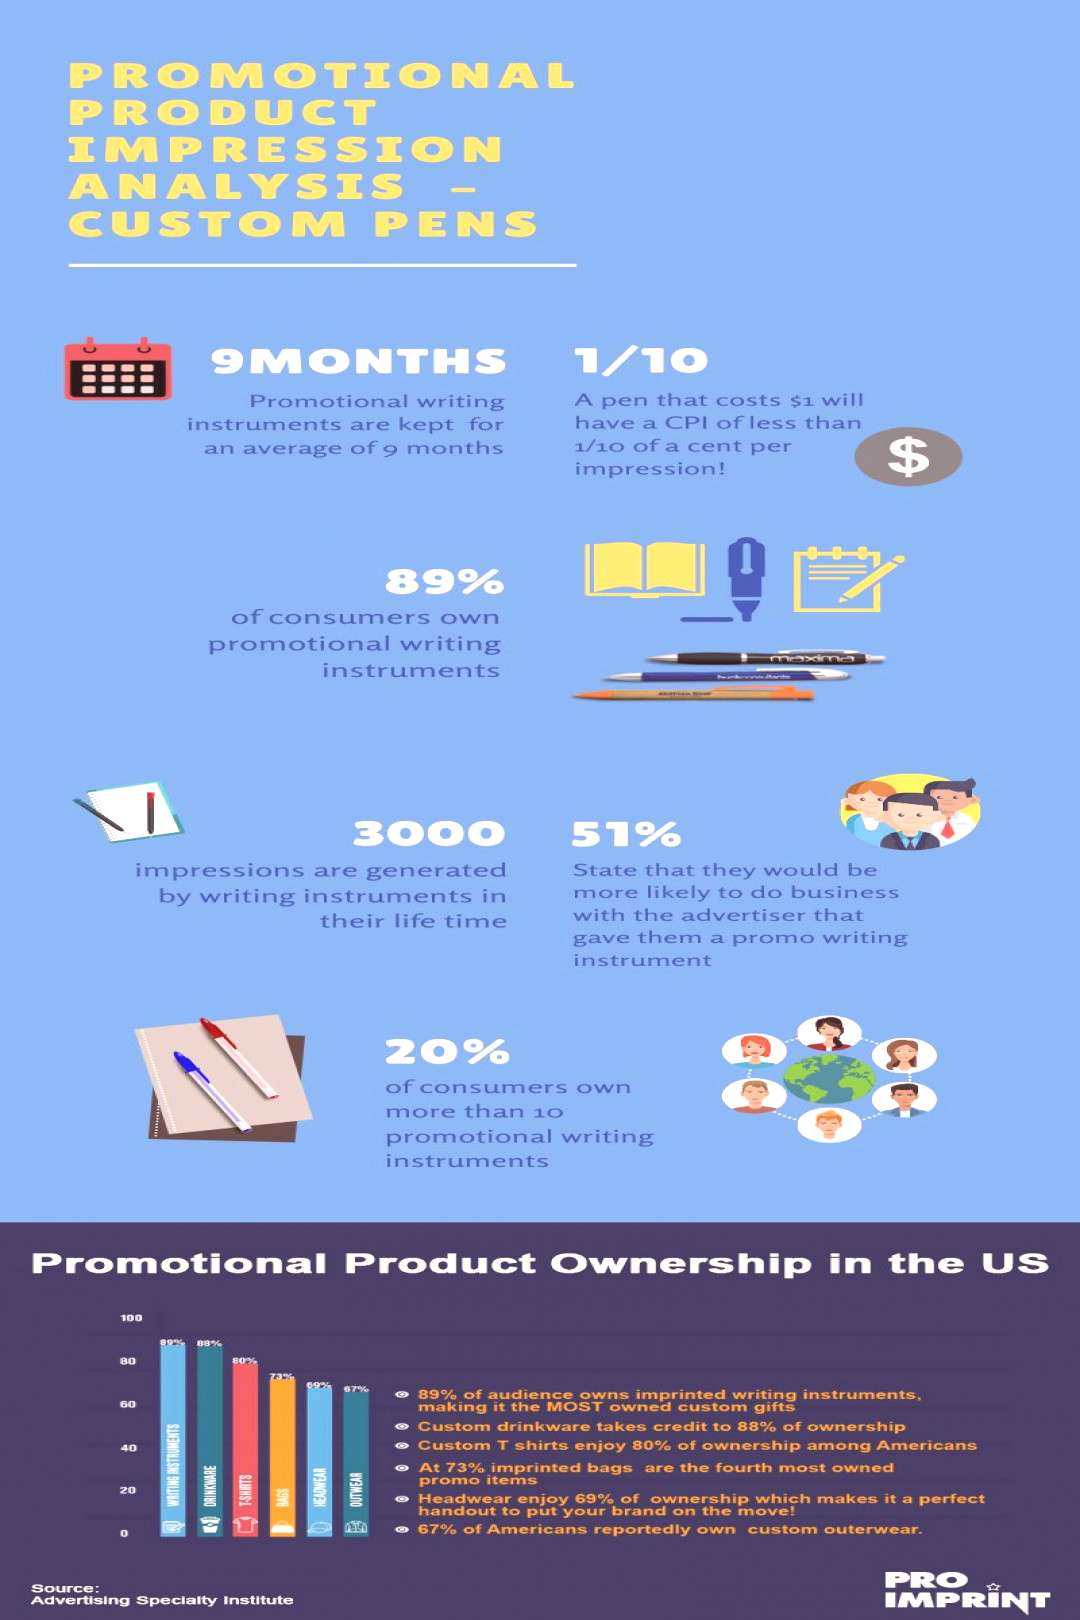 Promotional Product Impression Analysis – Custom Pens (Infographics) Here is a quick glance of t